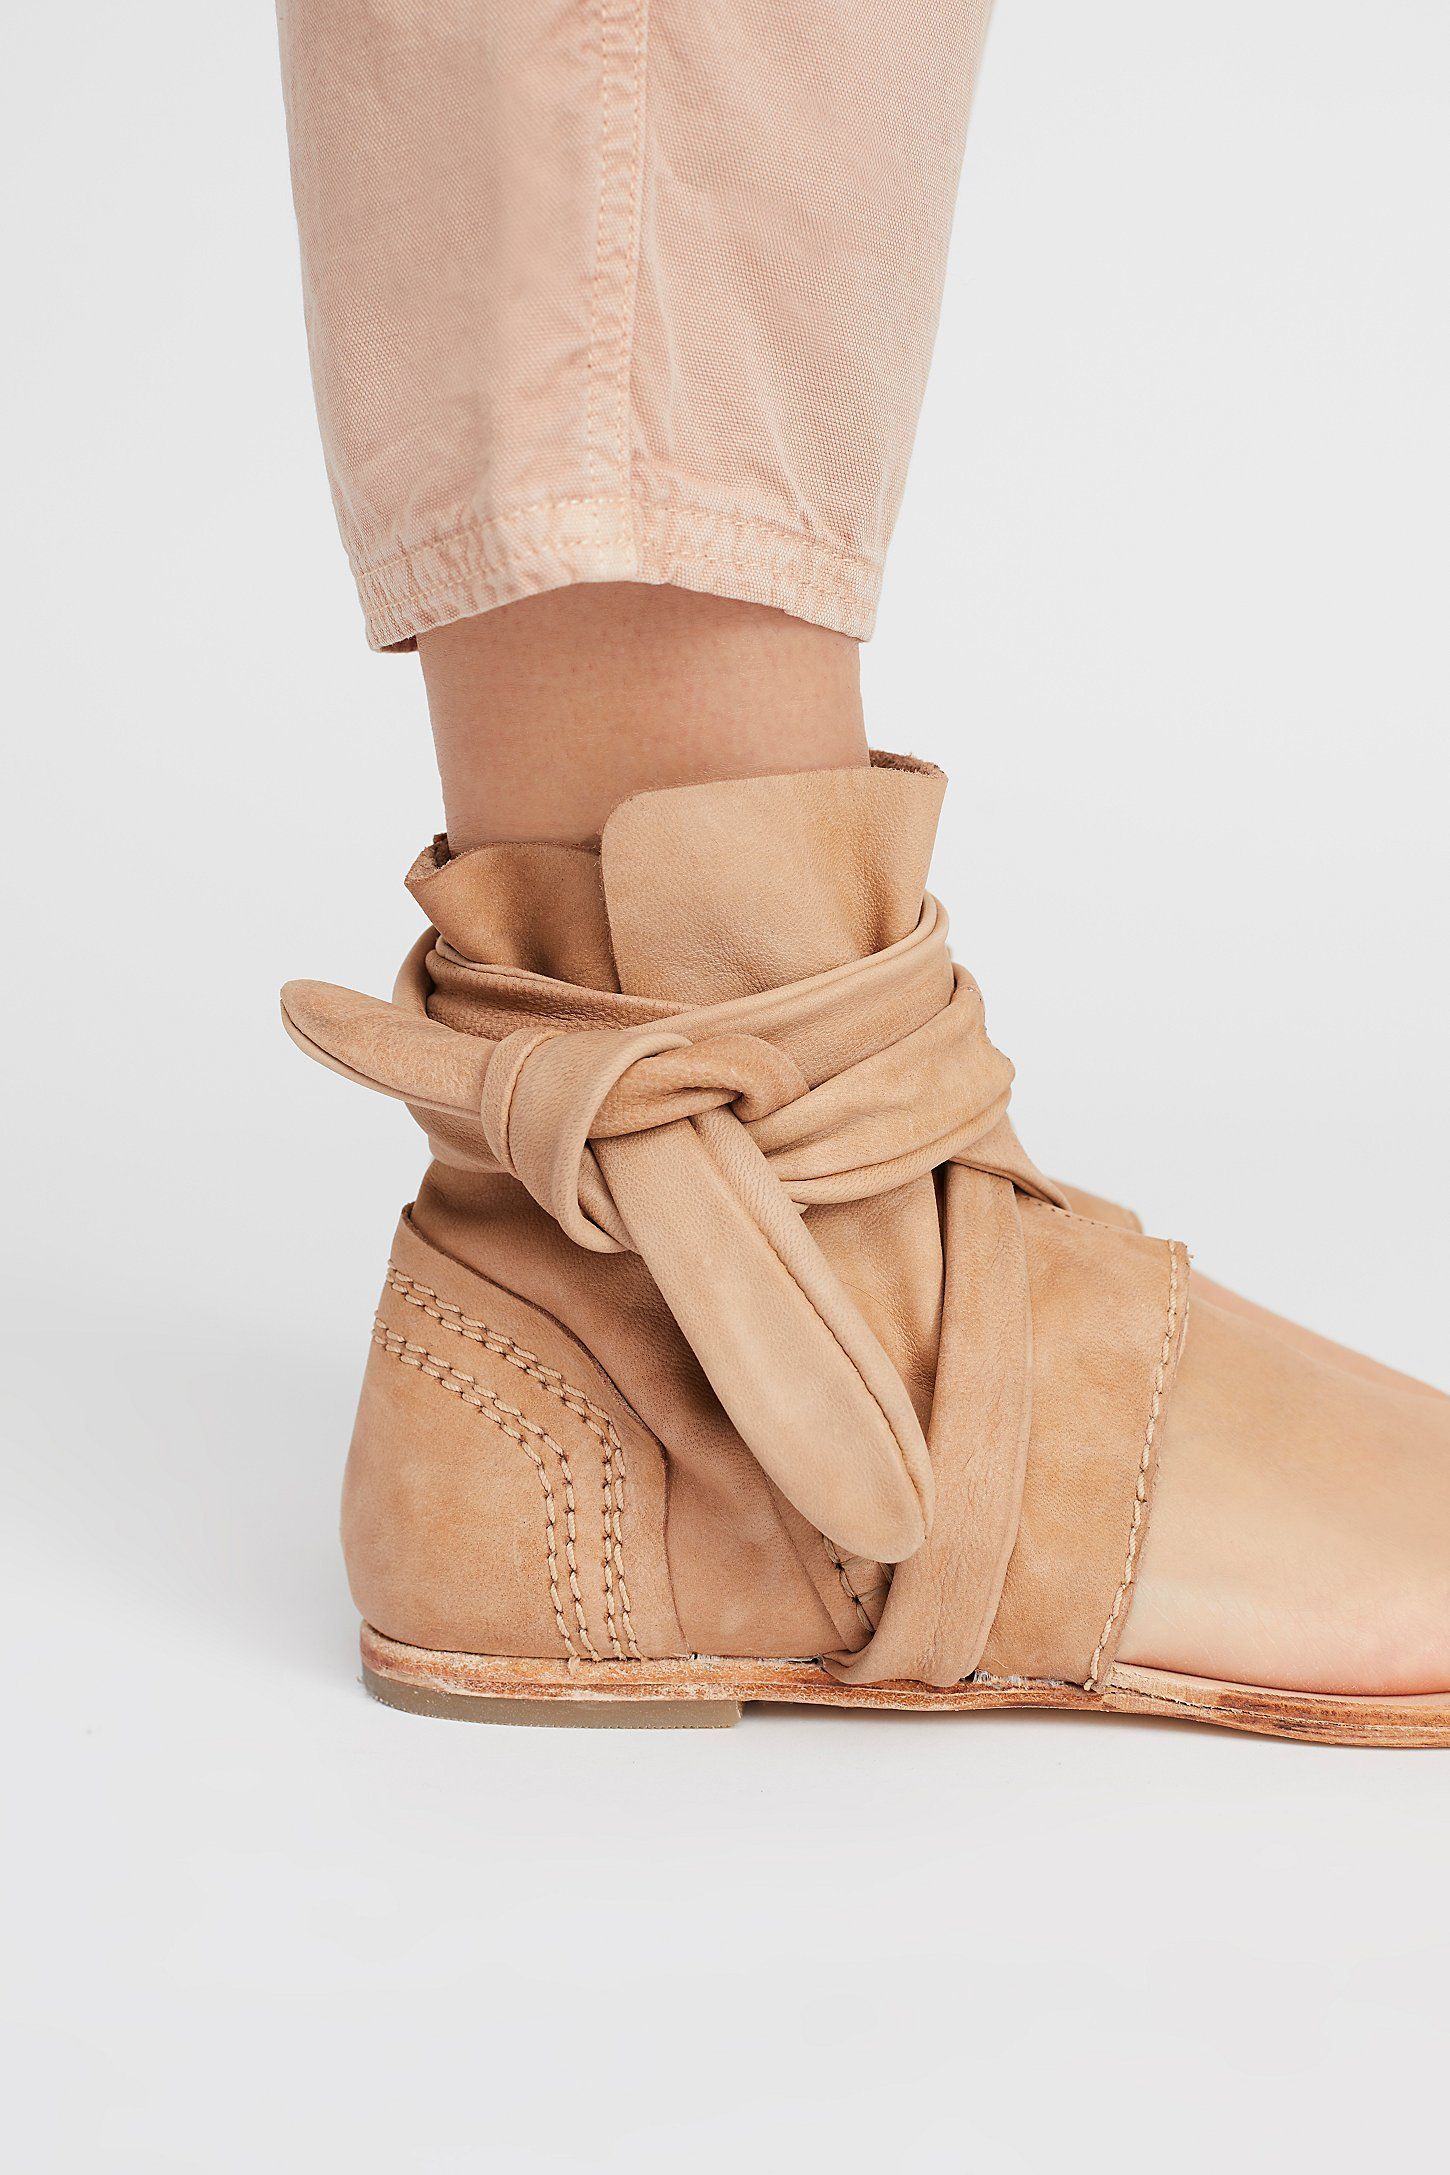 3b64f55f86e Shop our Delaney Boot Sandal at FreePeople.com. Share style pics with FP  Me